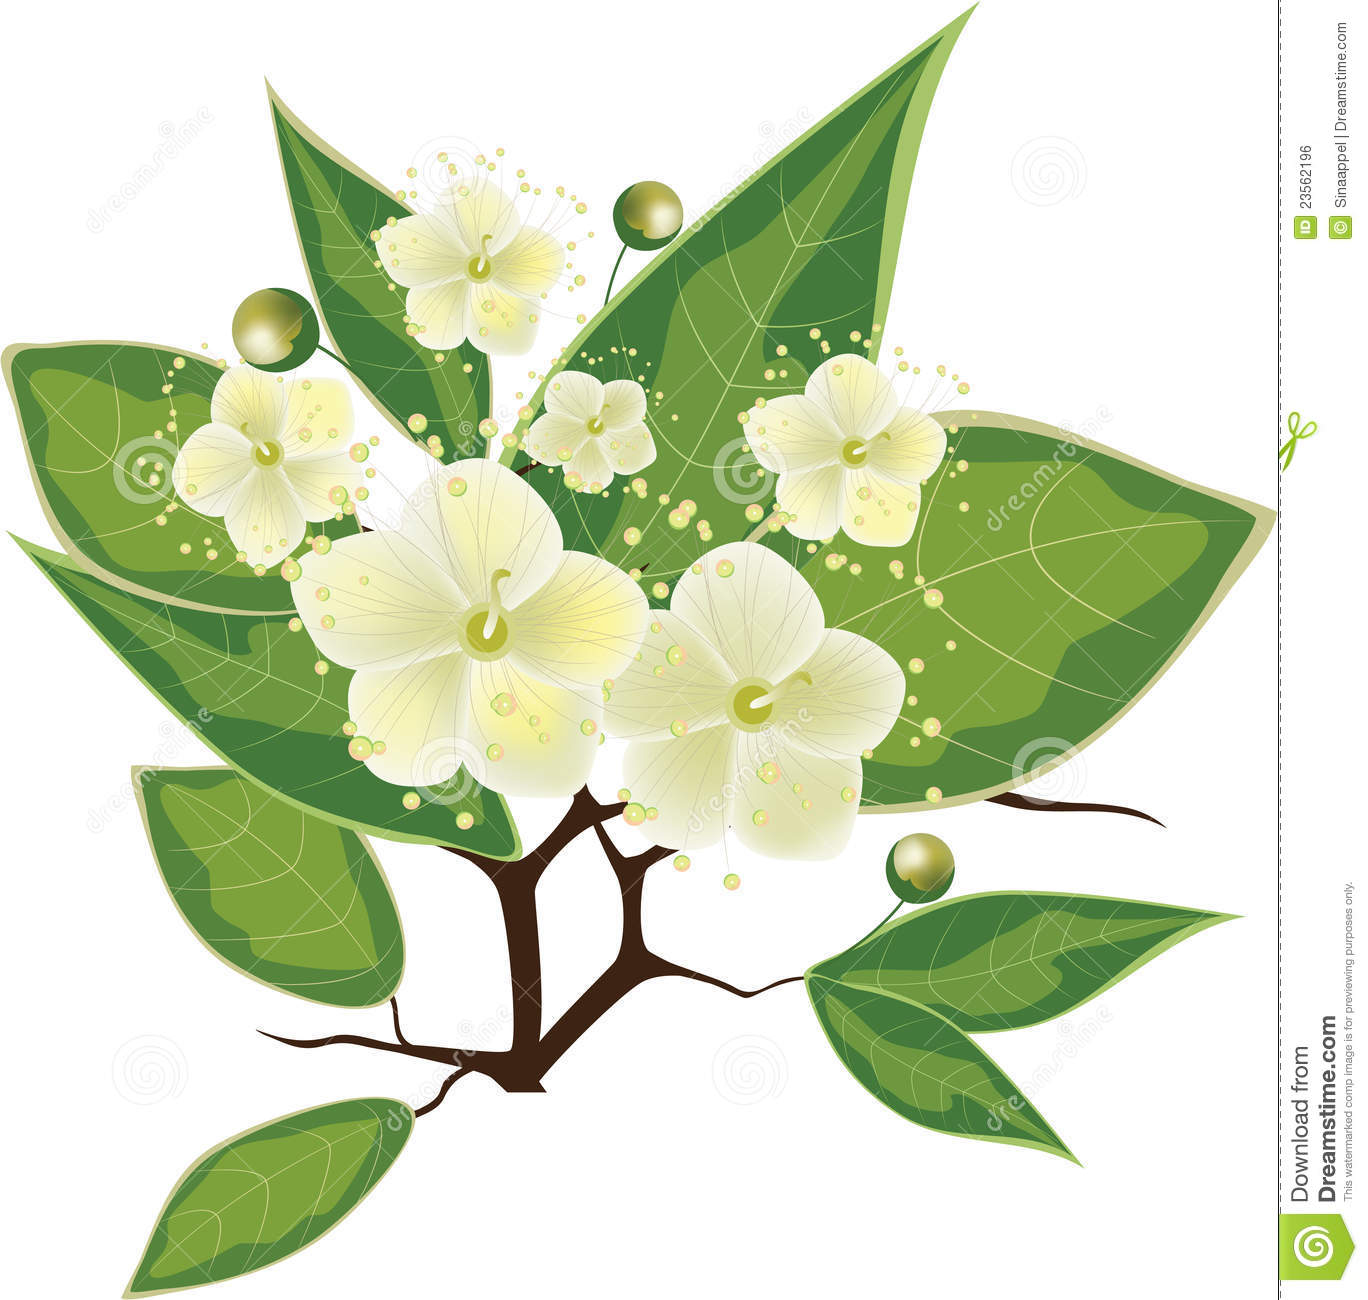 Blooming Myrtle Branch Vector Illustration Royalty Free